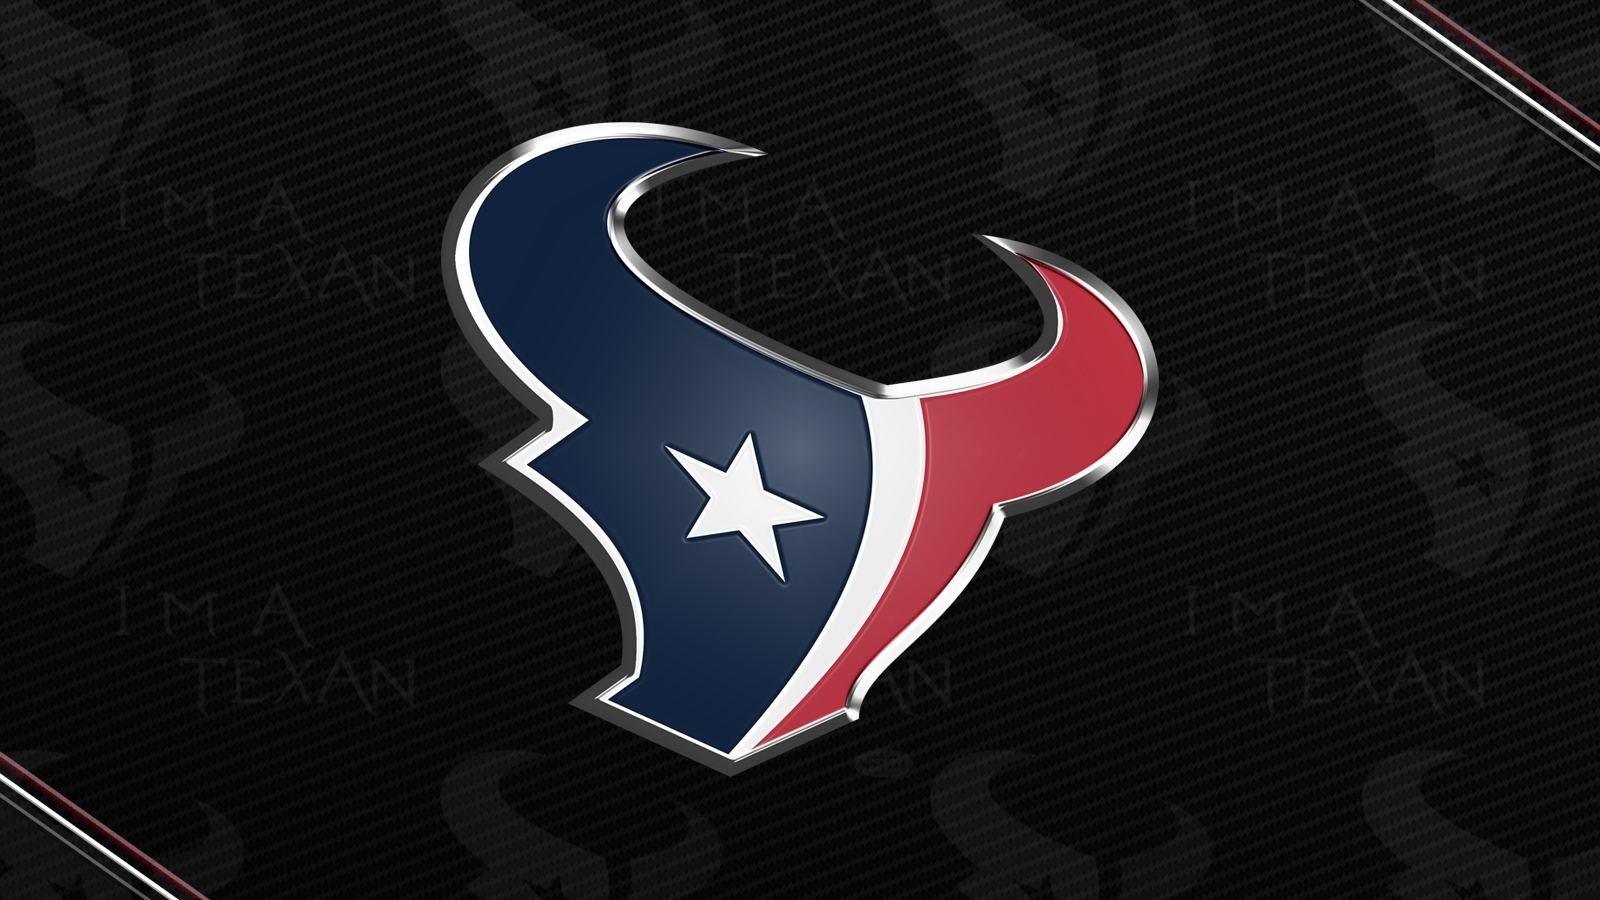 10 New Houston Texans Live Wallpaper FULL HD 1920×1080 For PC Background